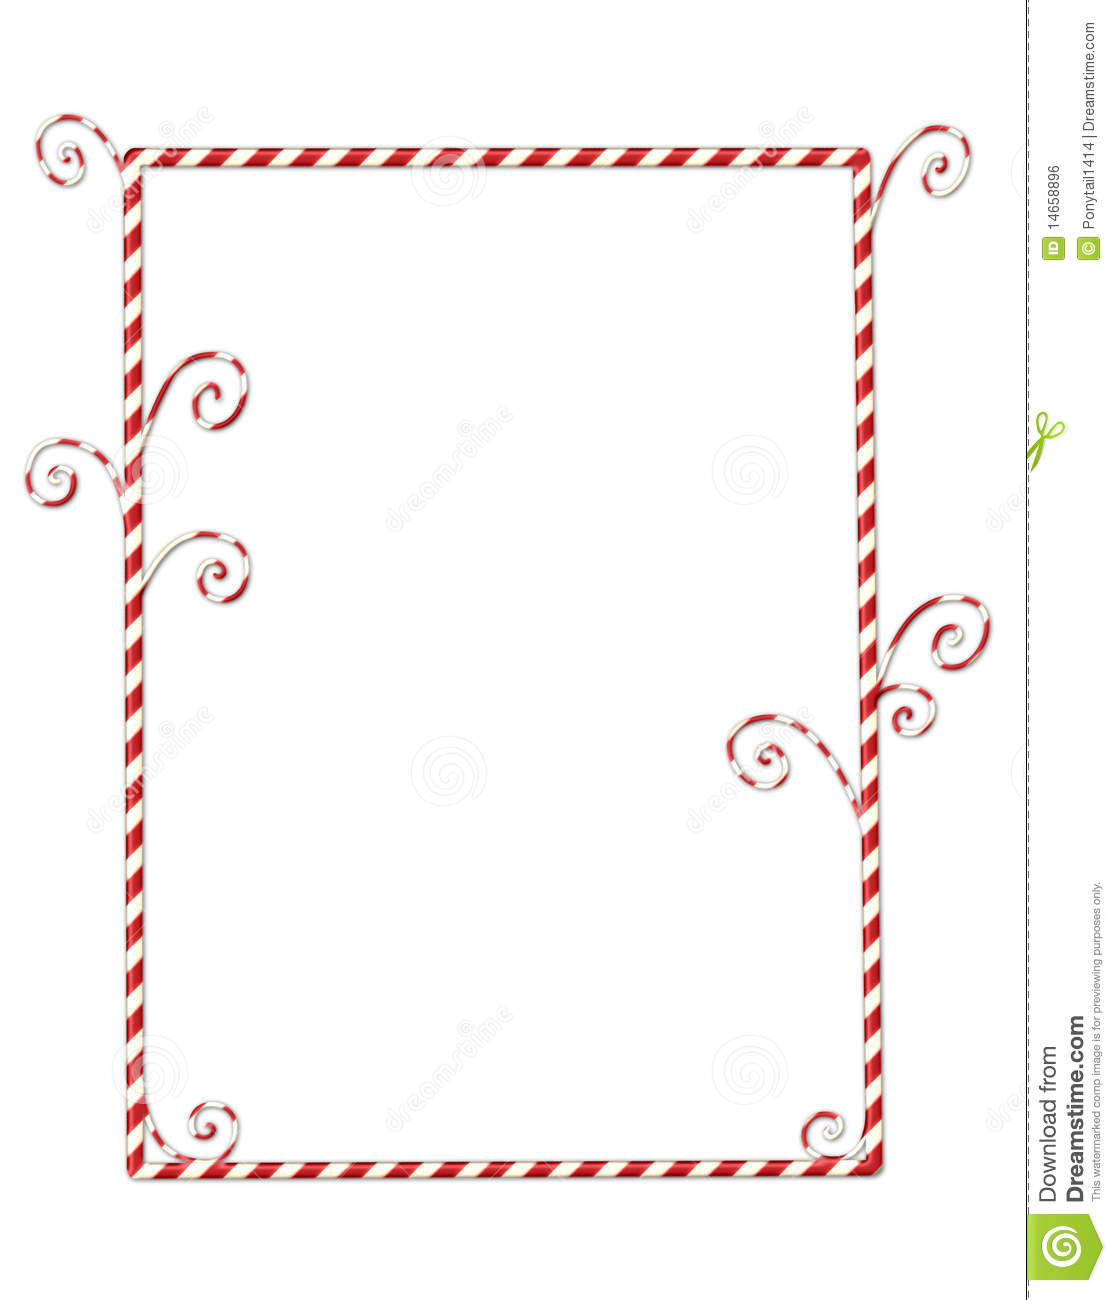 Free candy cane border clipart banner download 102+ Candy Cane Border Clip Art Free | ClipartLook banner download